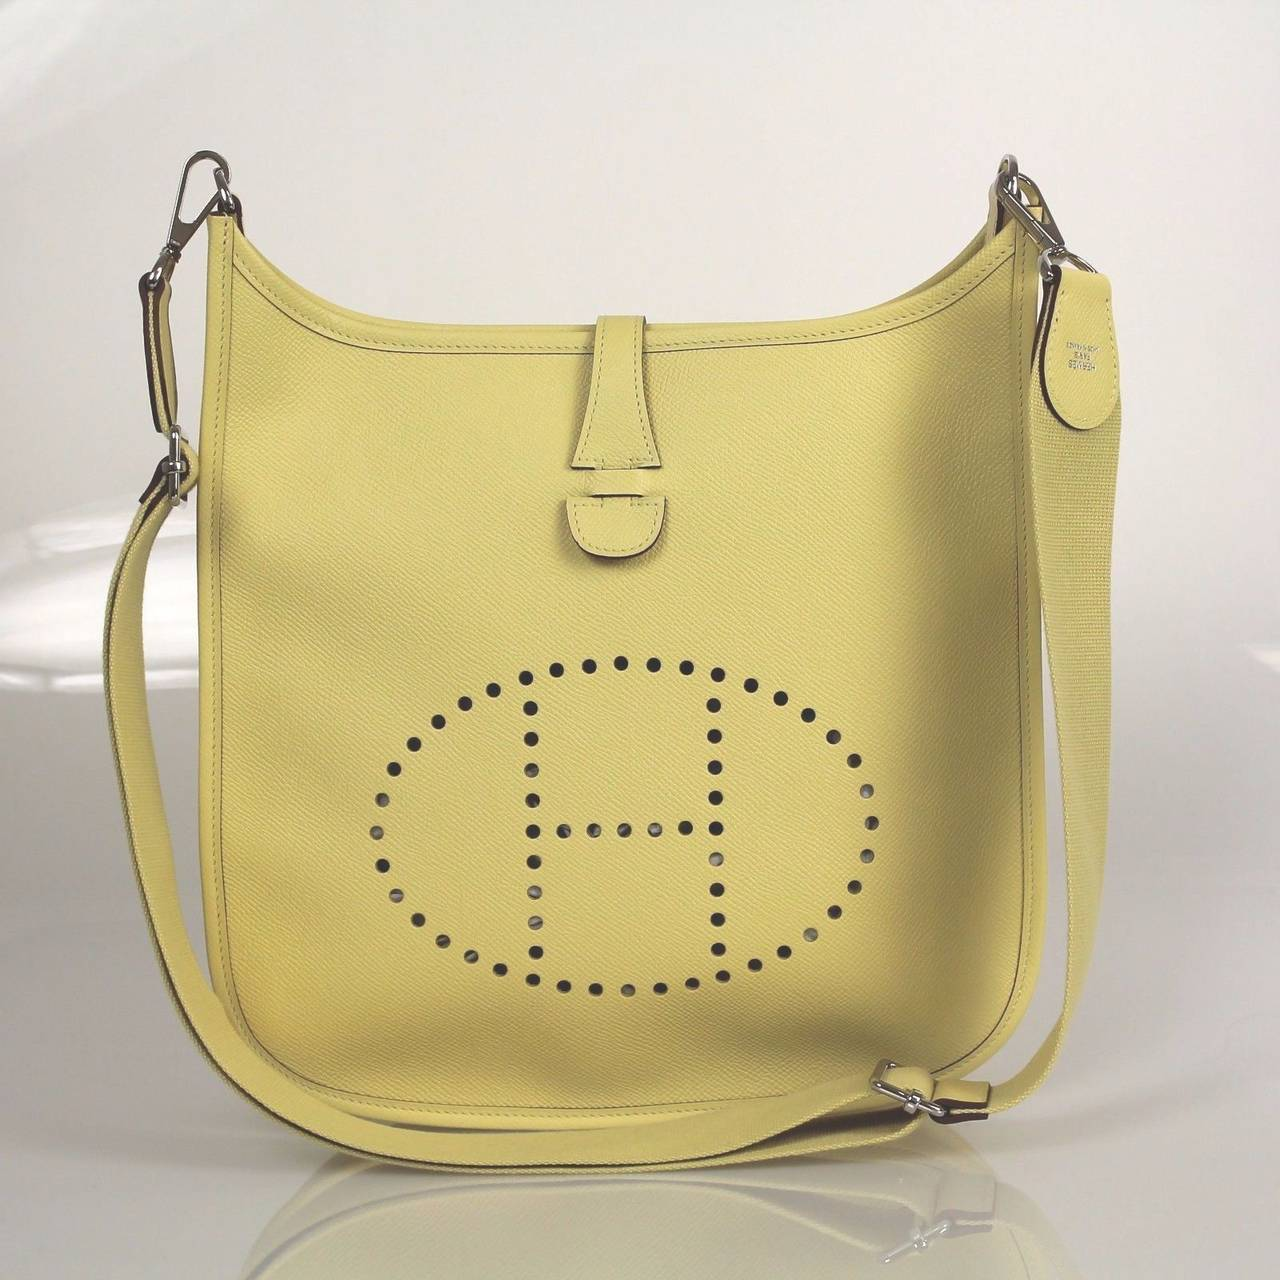 ... Epson Leather Evelyne Iii Pm Cross Body Bag For Sale at 1stdibs